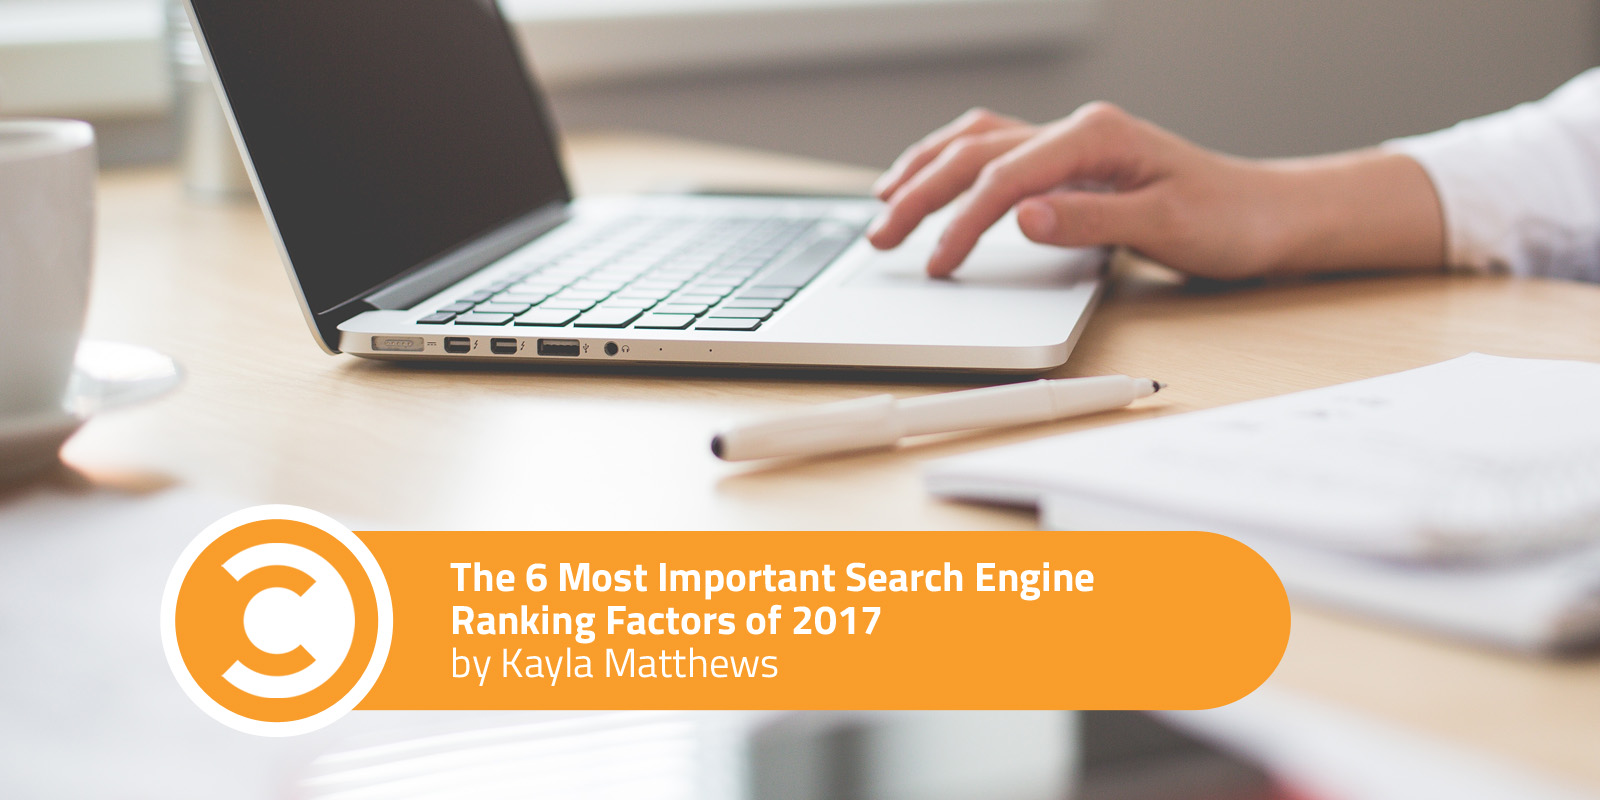 The 6 Most Important Search Engine Ranking Factors of 2017